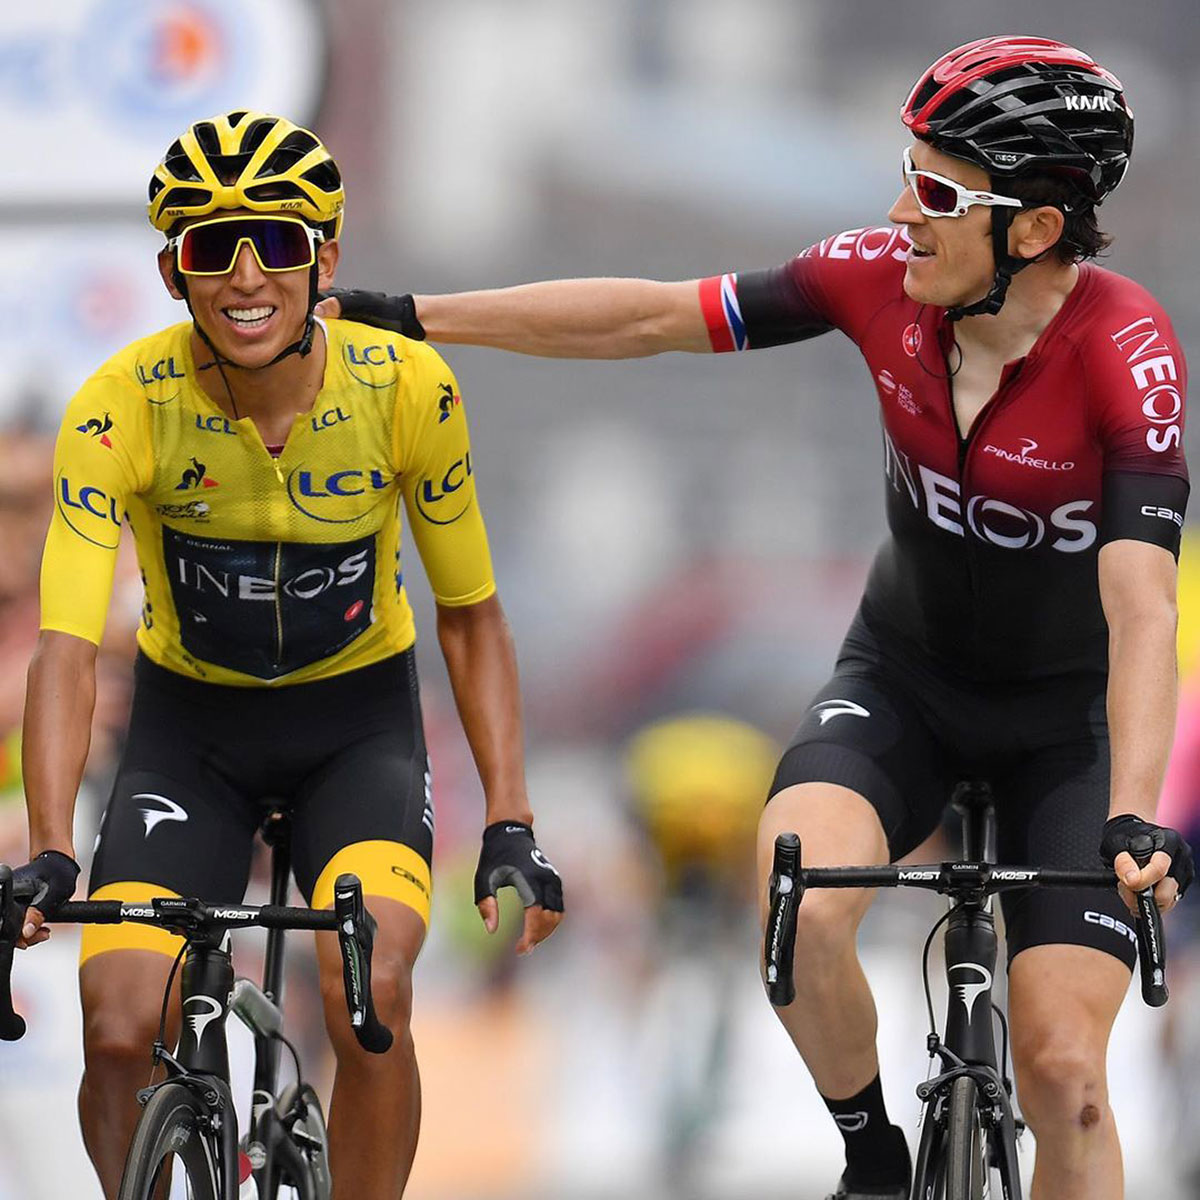 Bernal e Thomas al Tour de France 2019